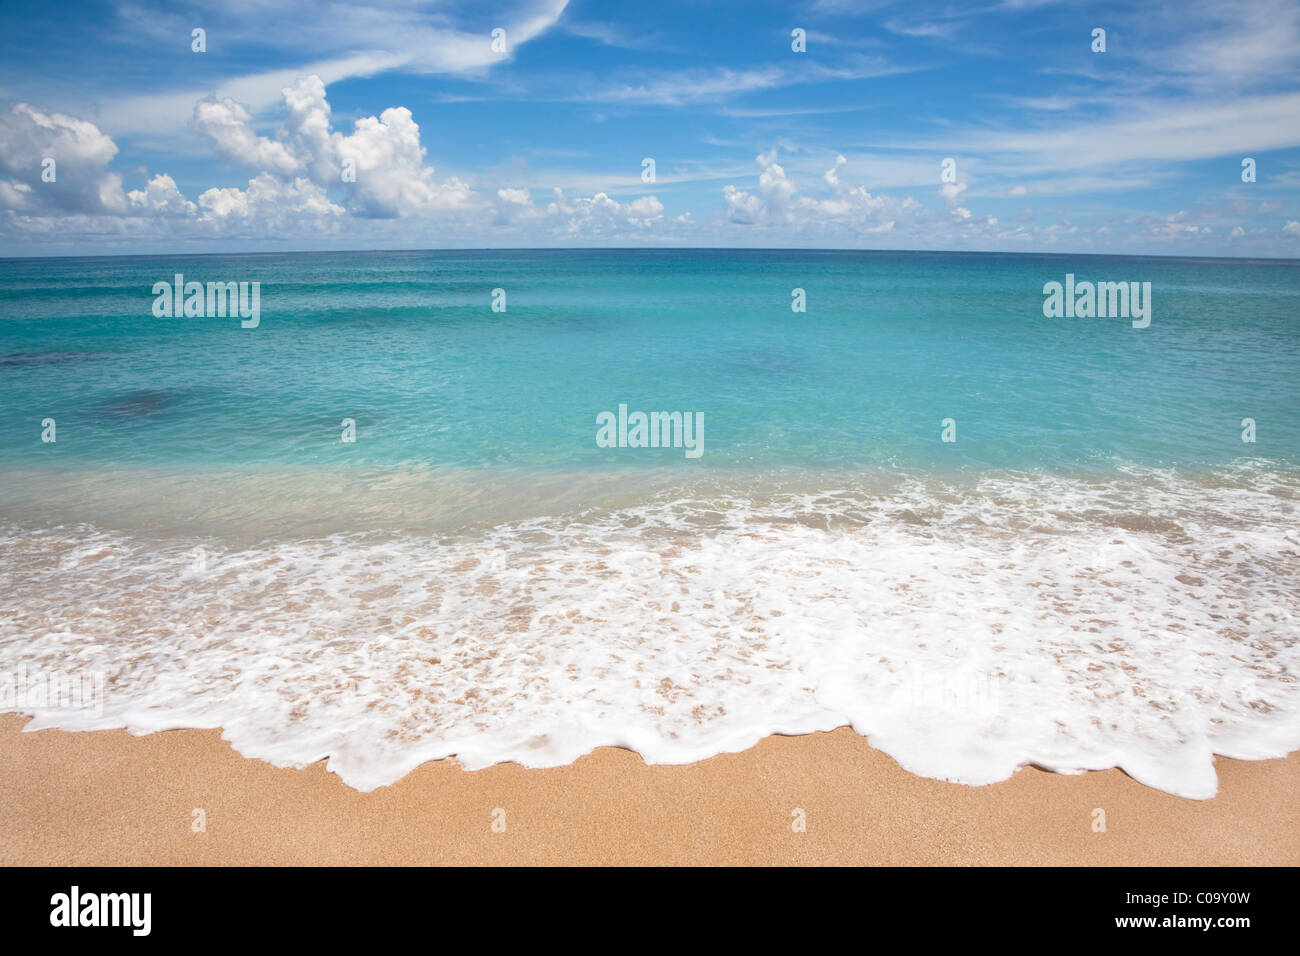 Empty beach with white wave spray - Stock Image